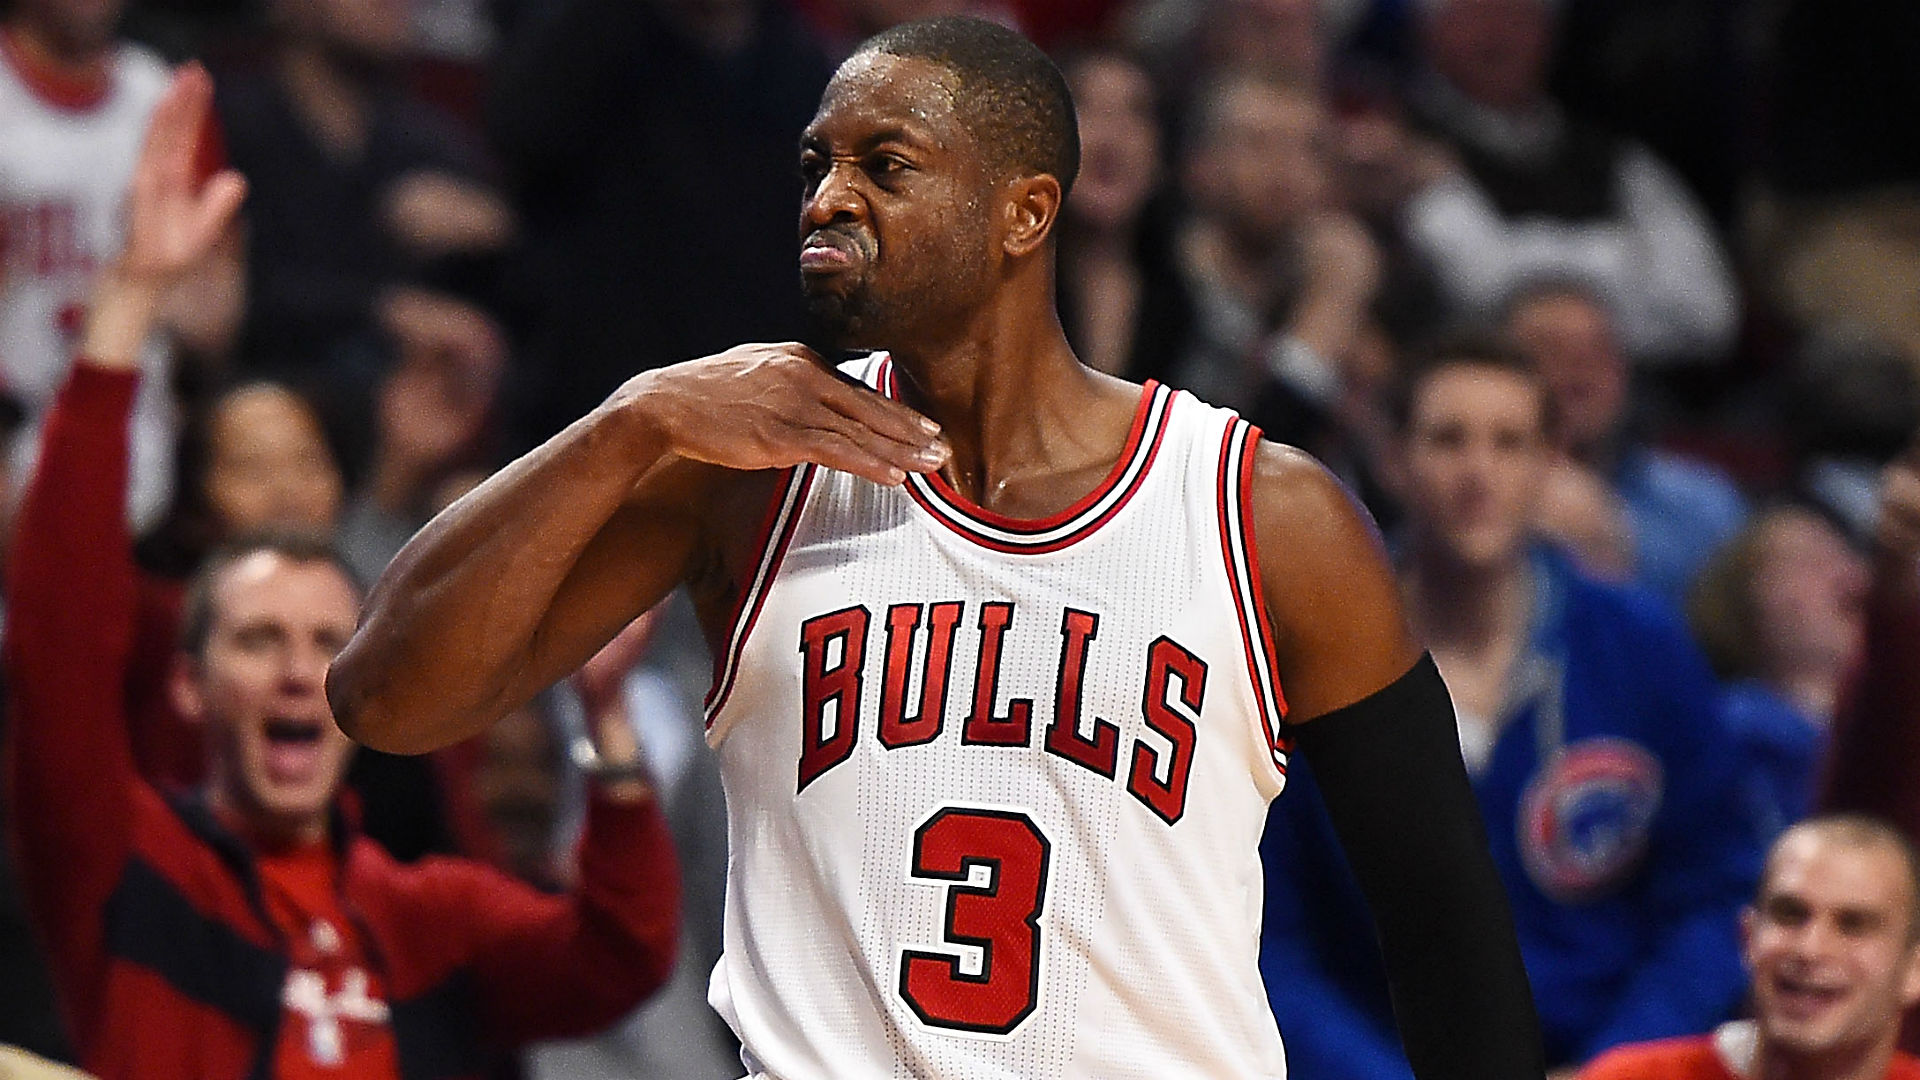 Dwyane Wade says he was ejected because he told the truth